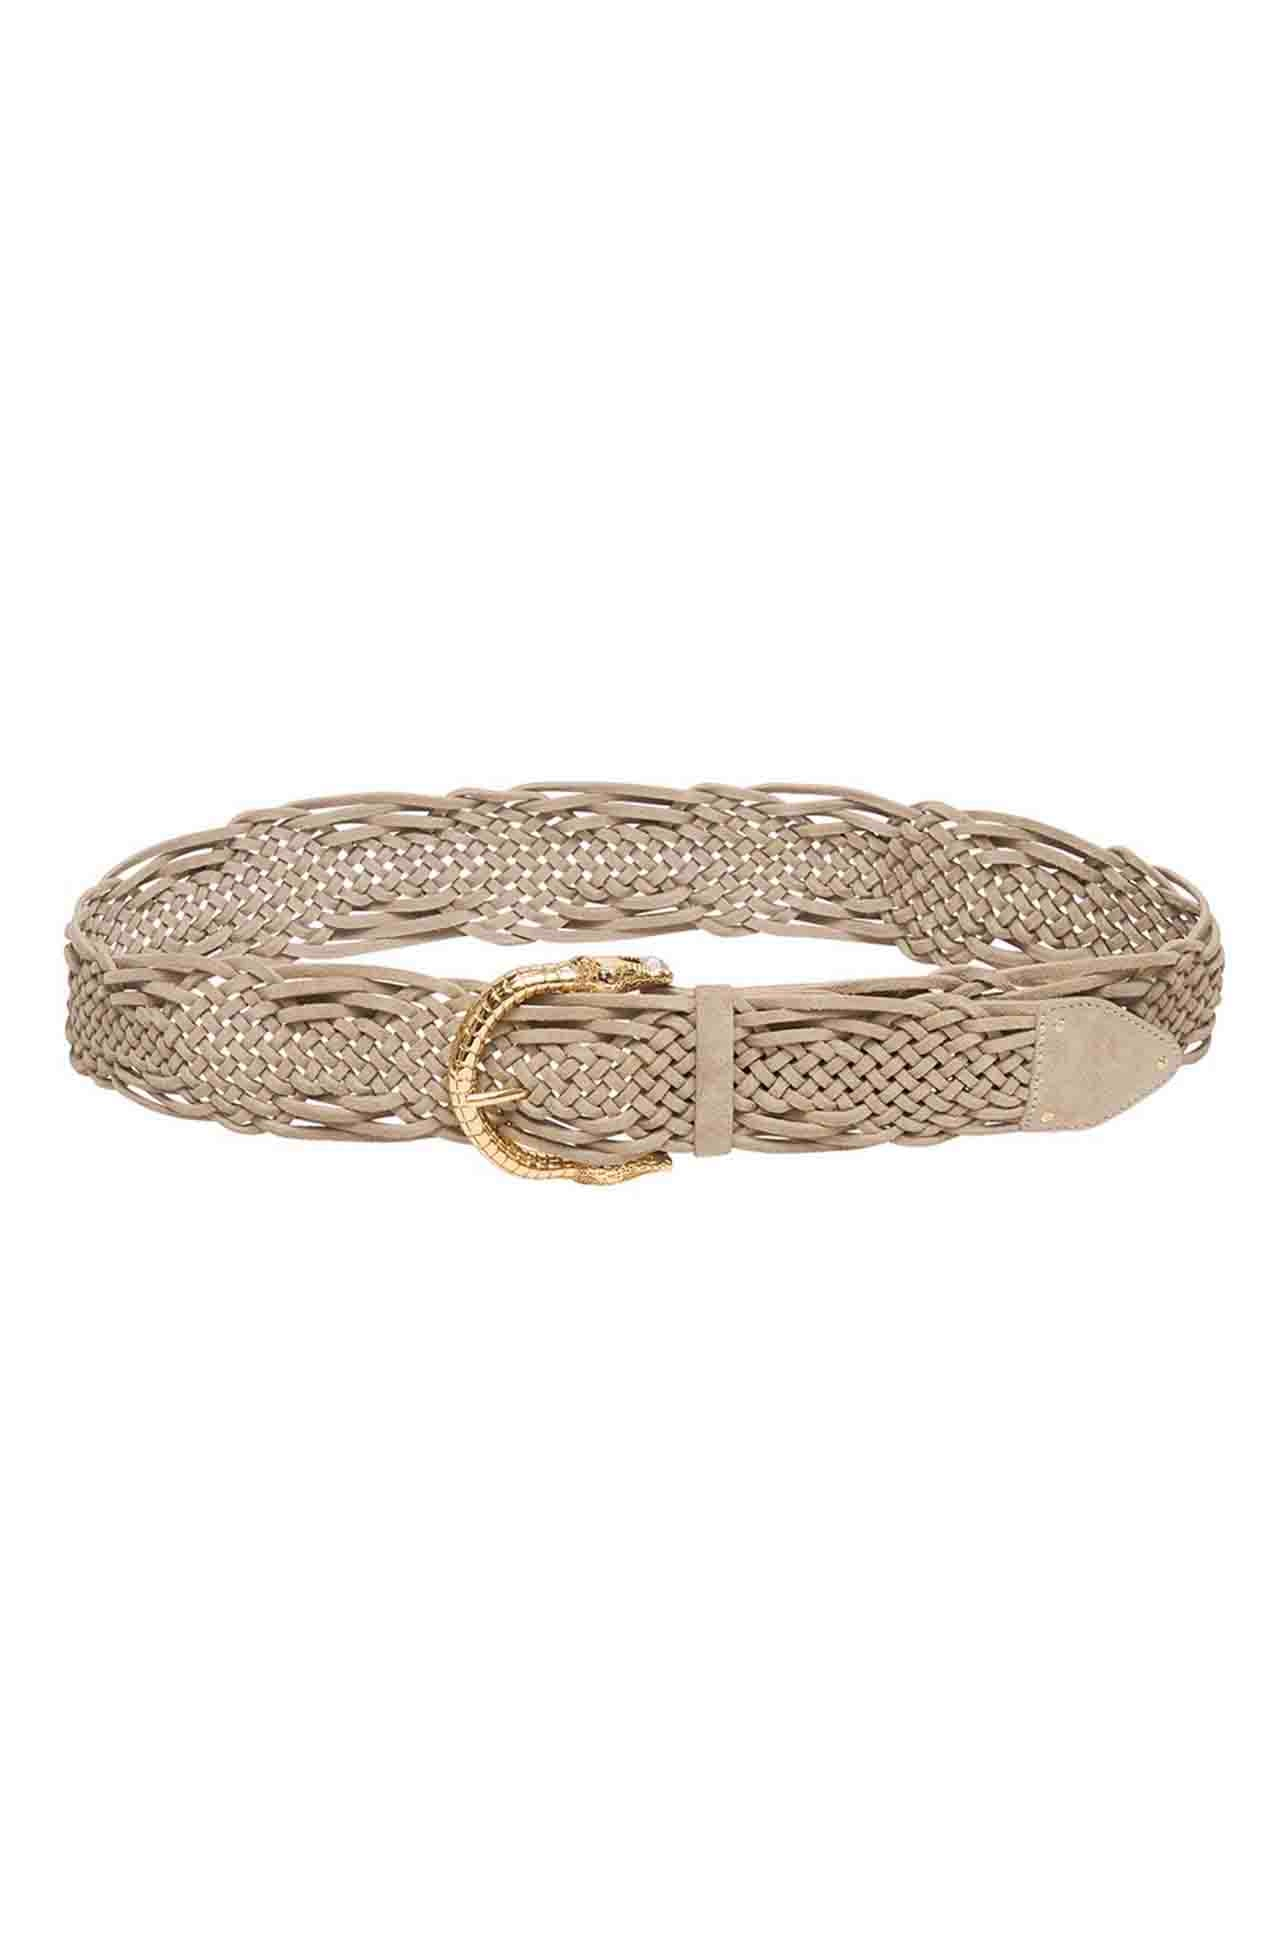 Camilla - Fair Verona Woven Leather Belt